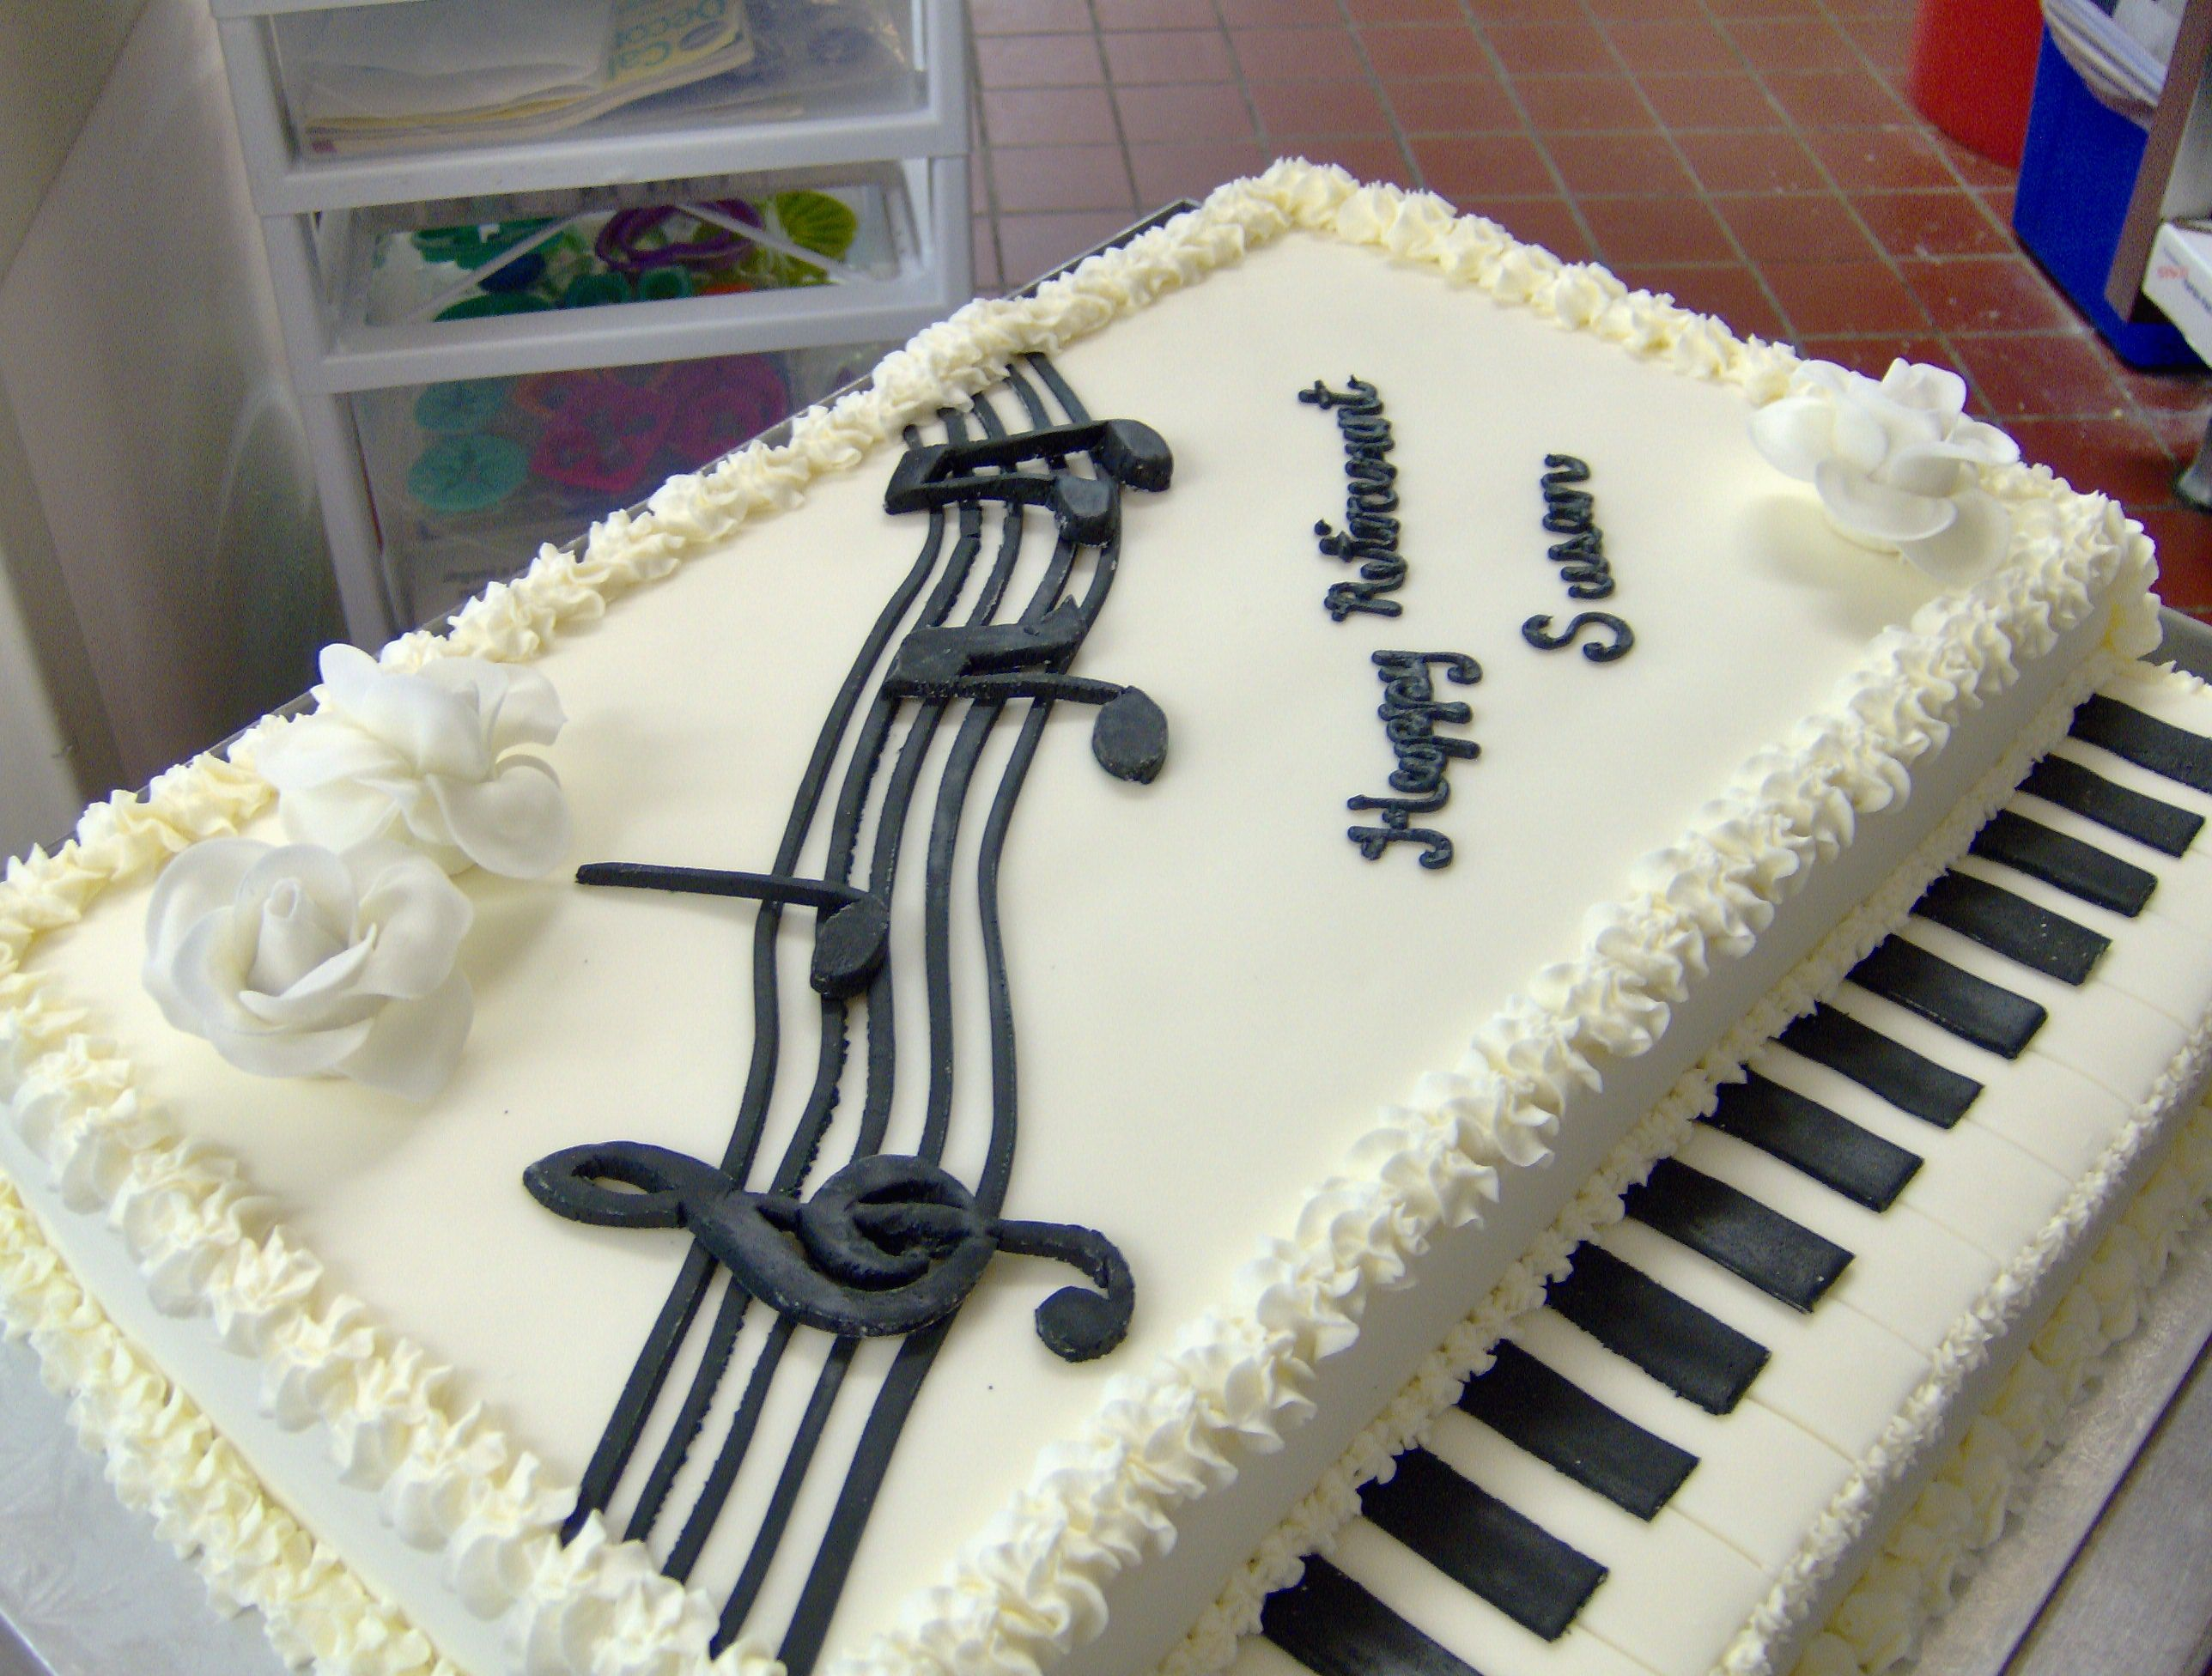 Cake Decoration Music : a piano cake for a musically inclined clients retirement ...